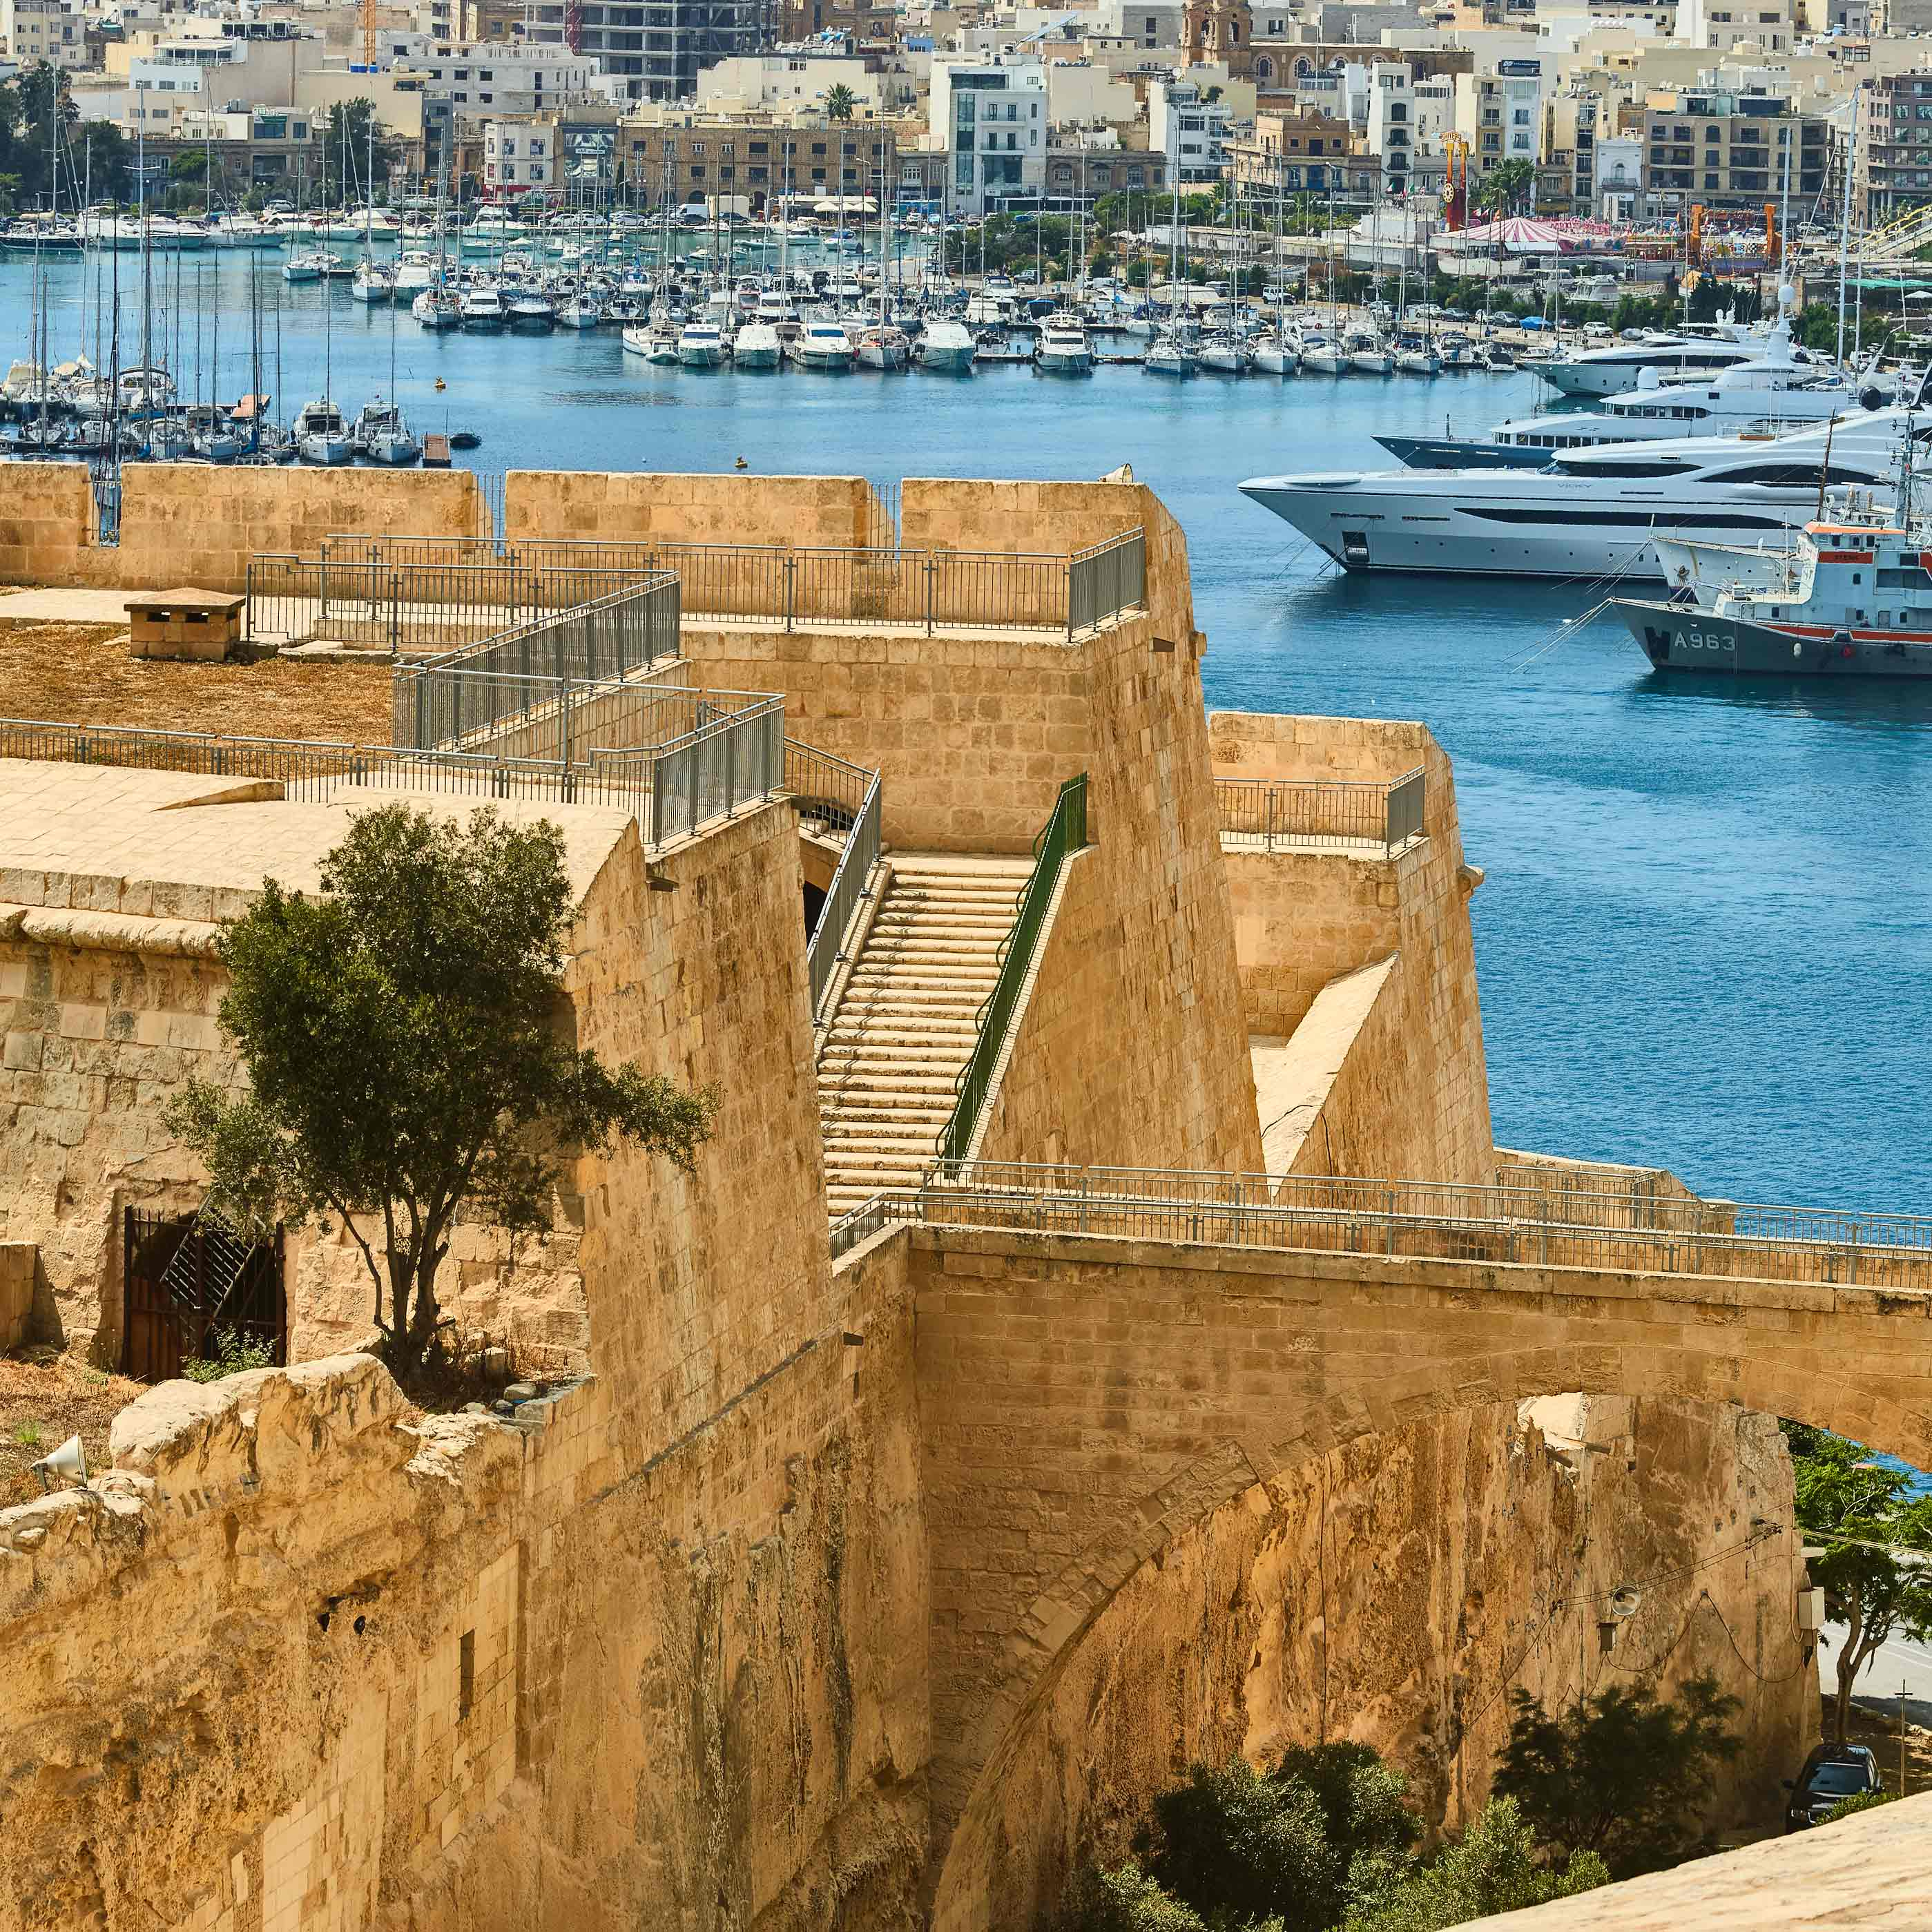 Valletta Landfront fortifications